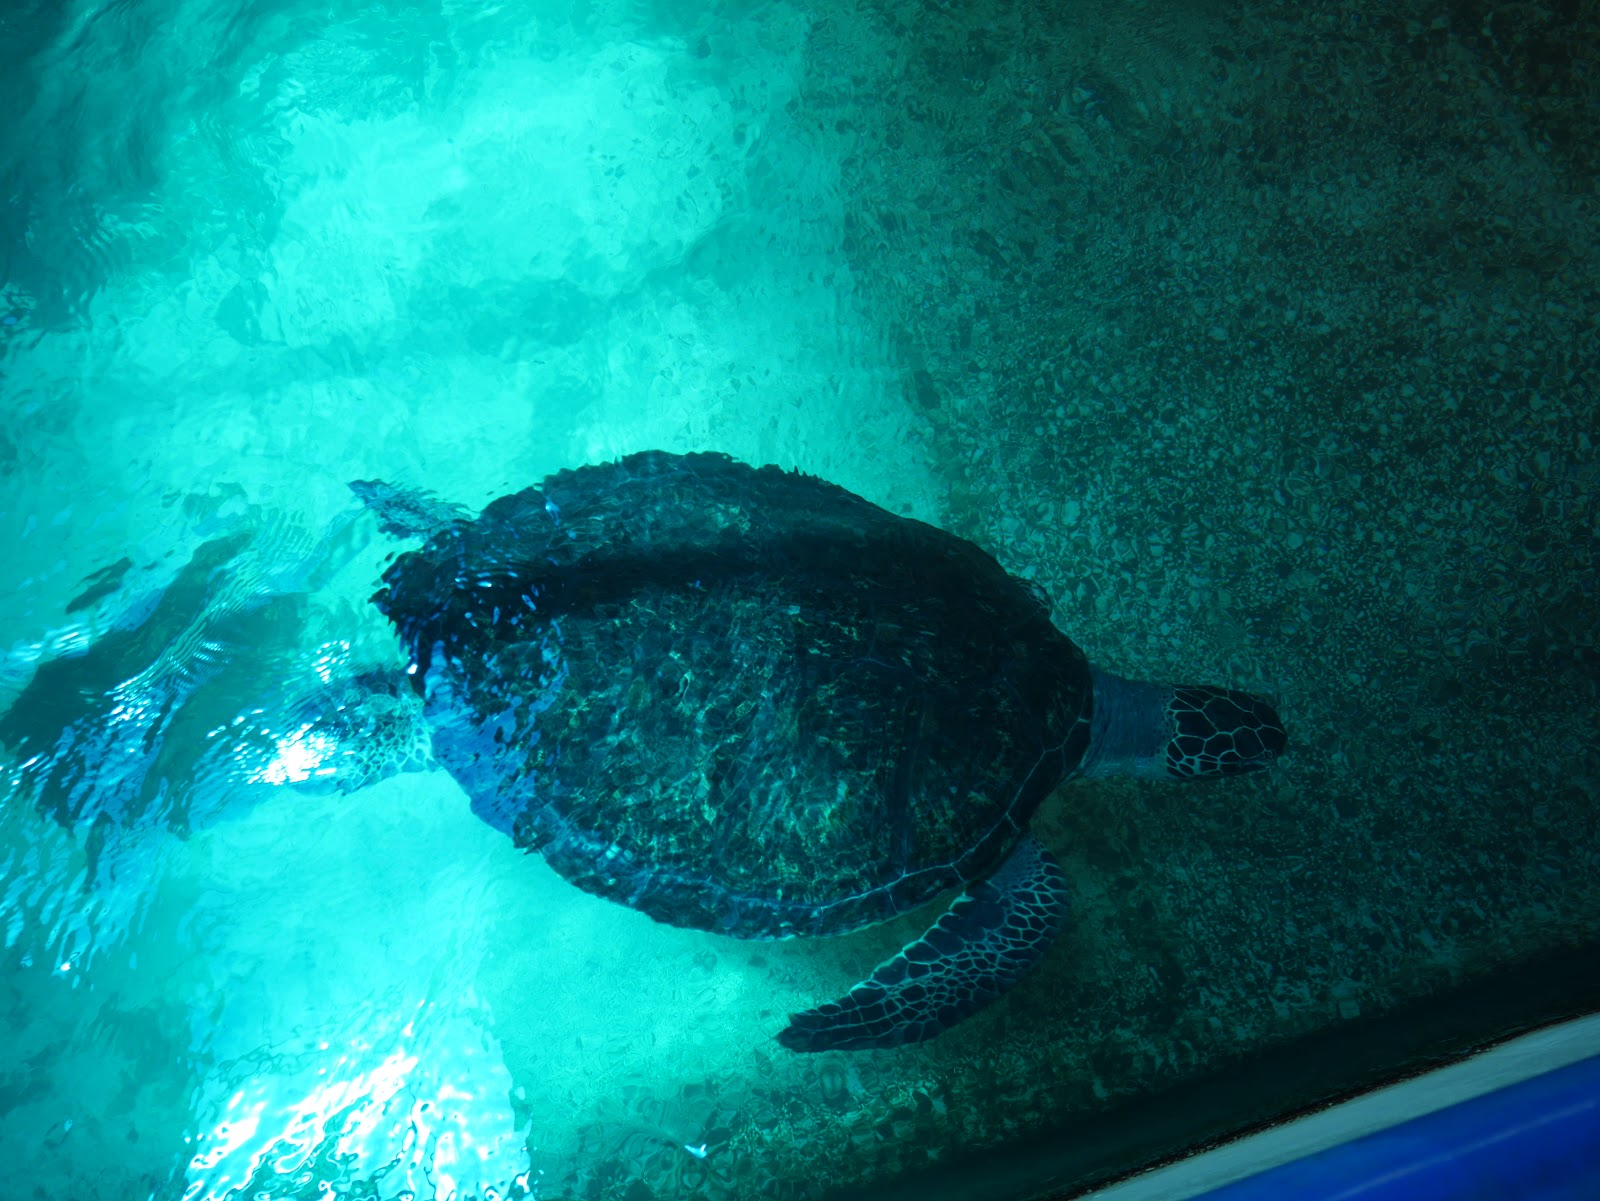 a sea turtle at the National Oceonographic Museum of Vietnam in Nha Trang